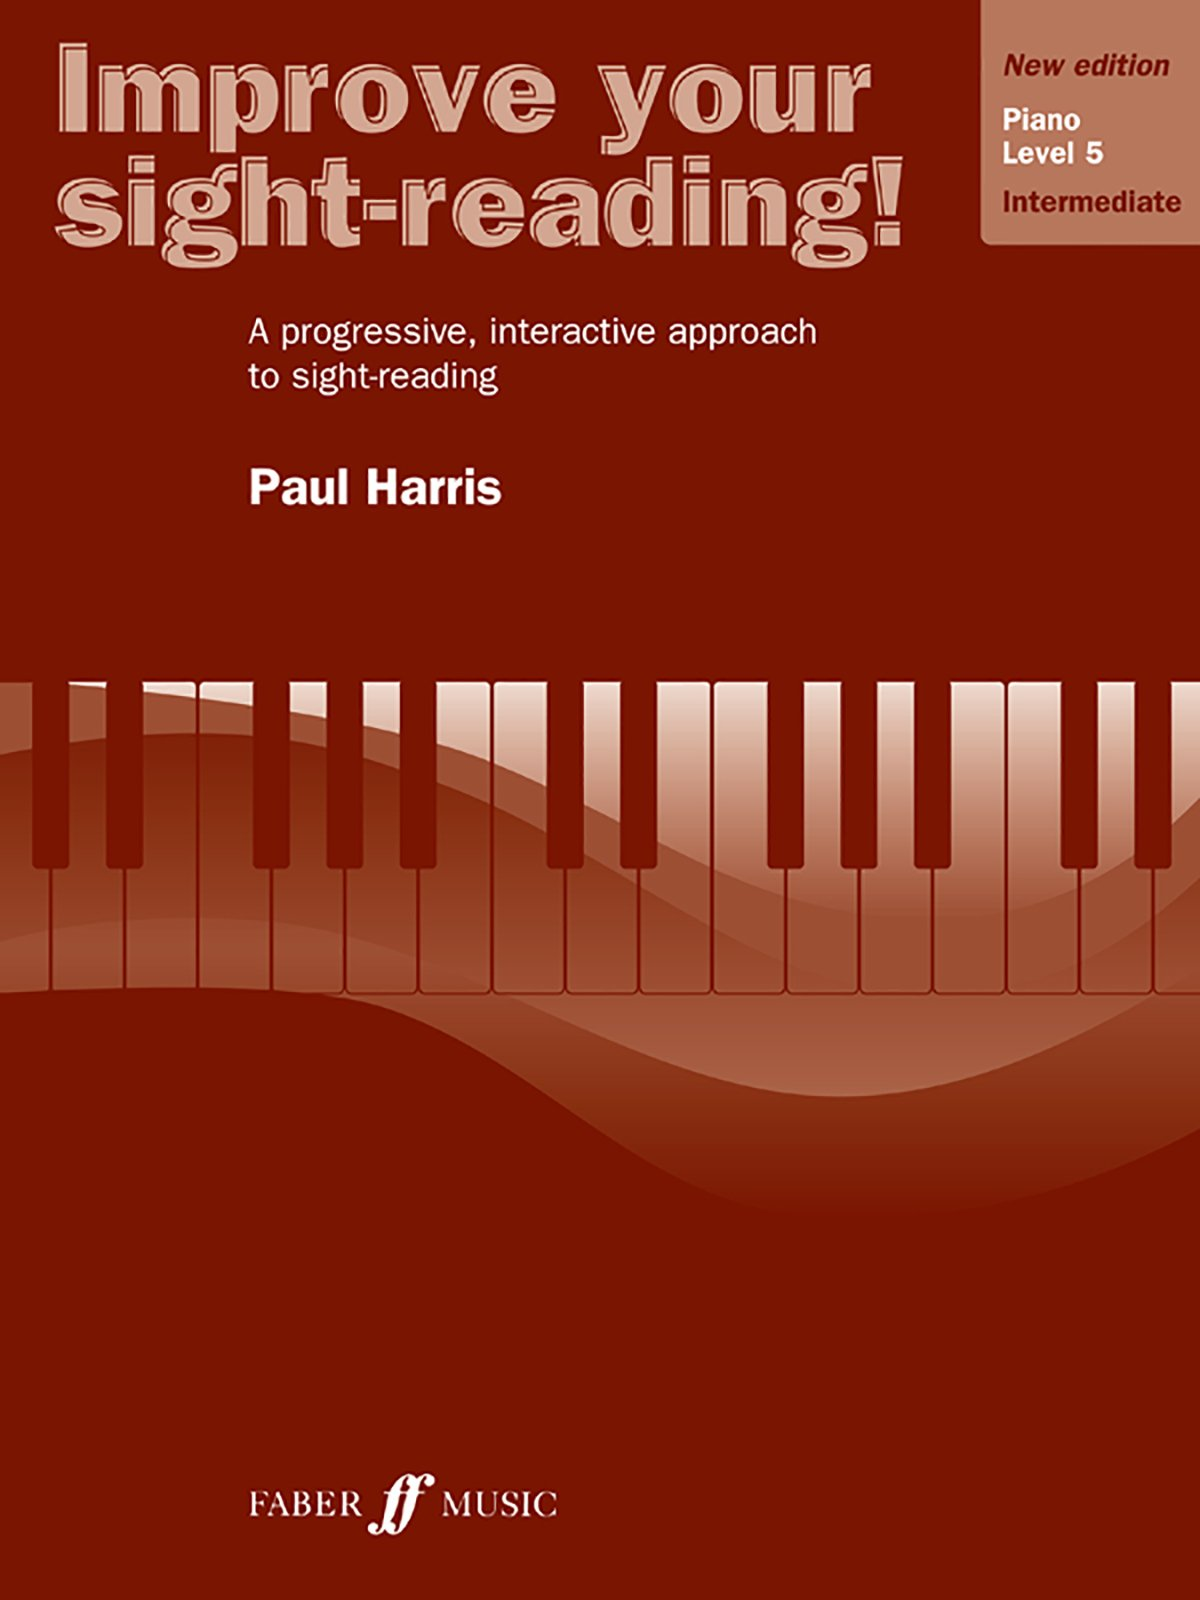 Improve Your Sight-reading! Piano, Level 5: A Progressive, Interactive Approach to Sight-reading (Faber Edition: Improve Your Sight-Reading)